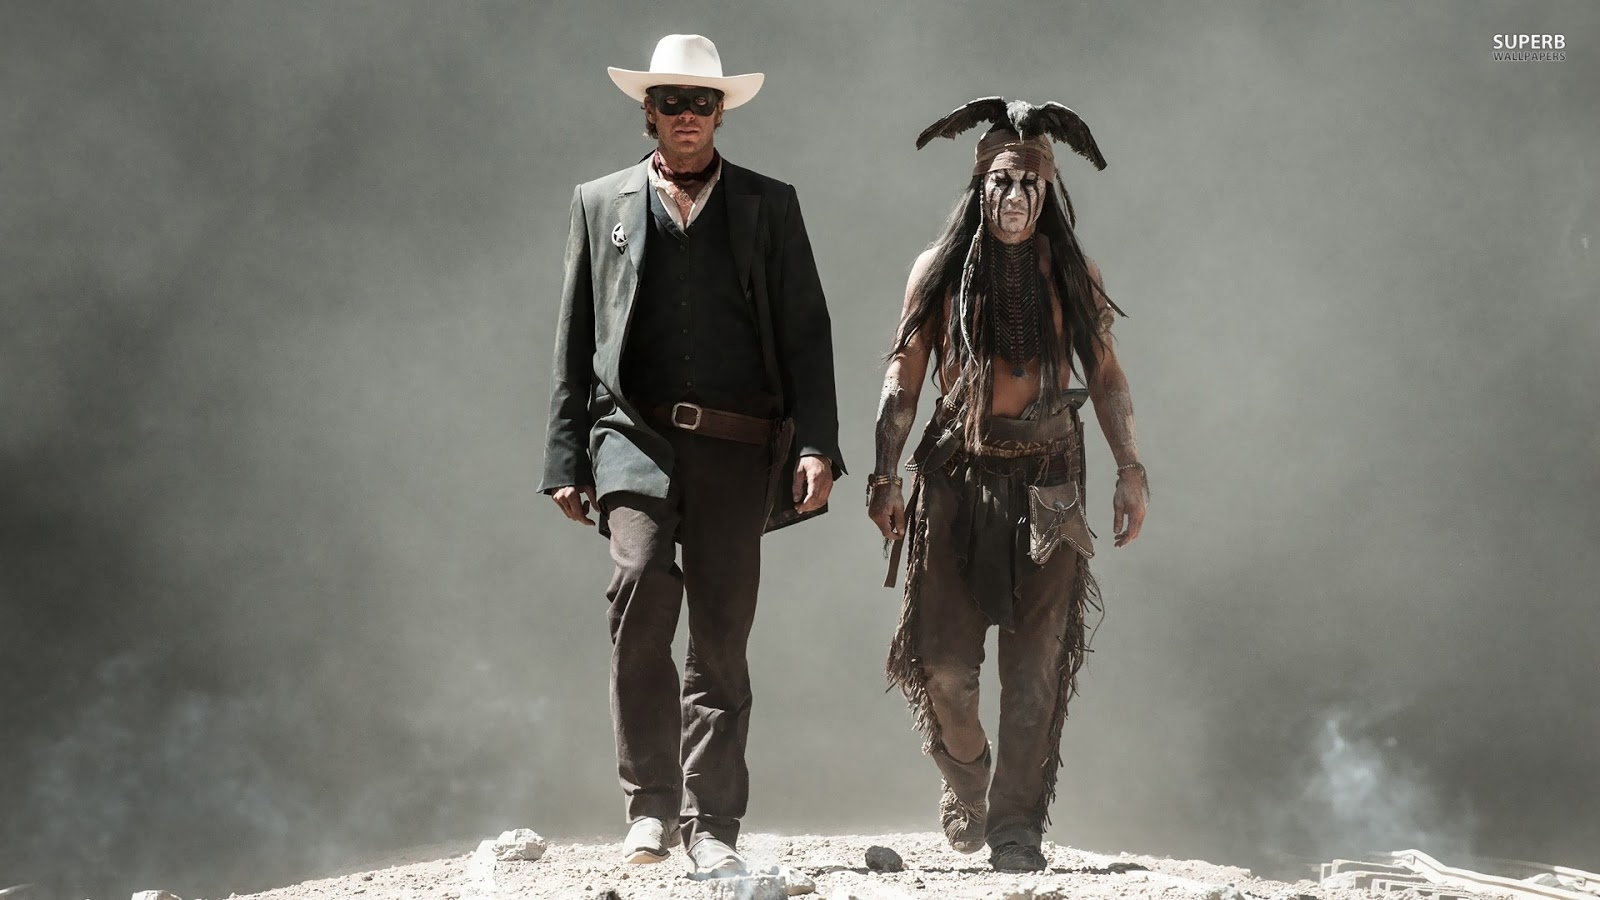 tonto-and-the-lone-ranger-19942-1920x1080